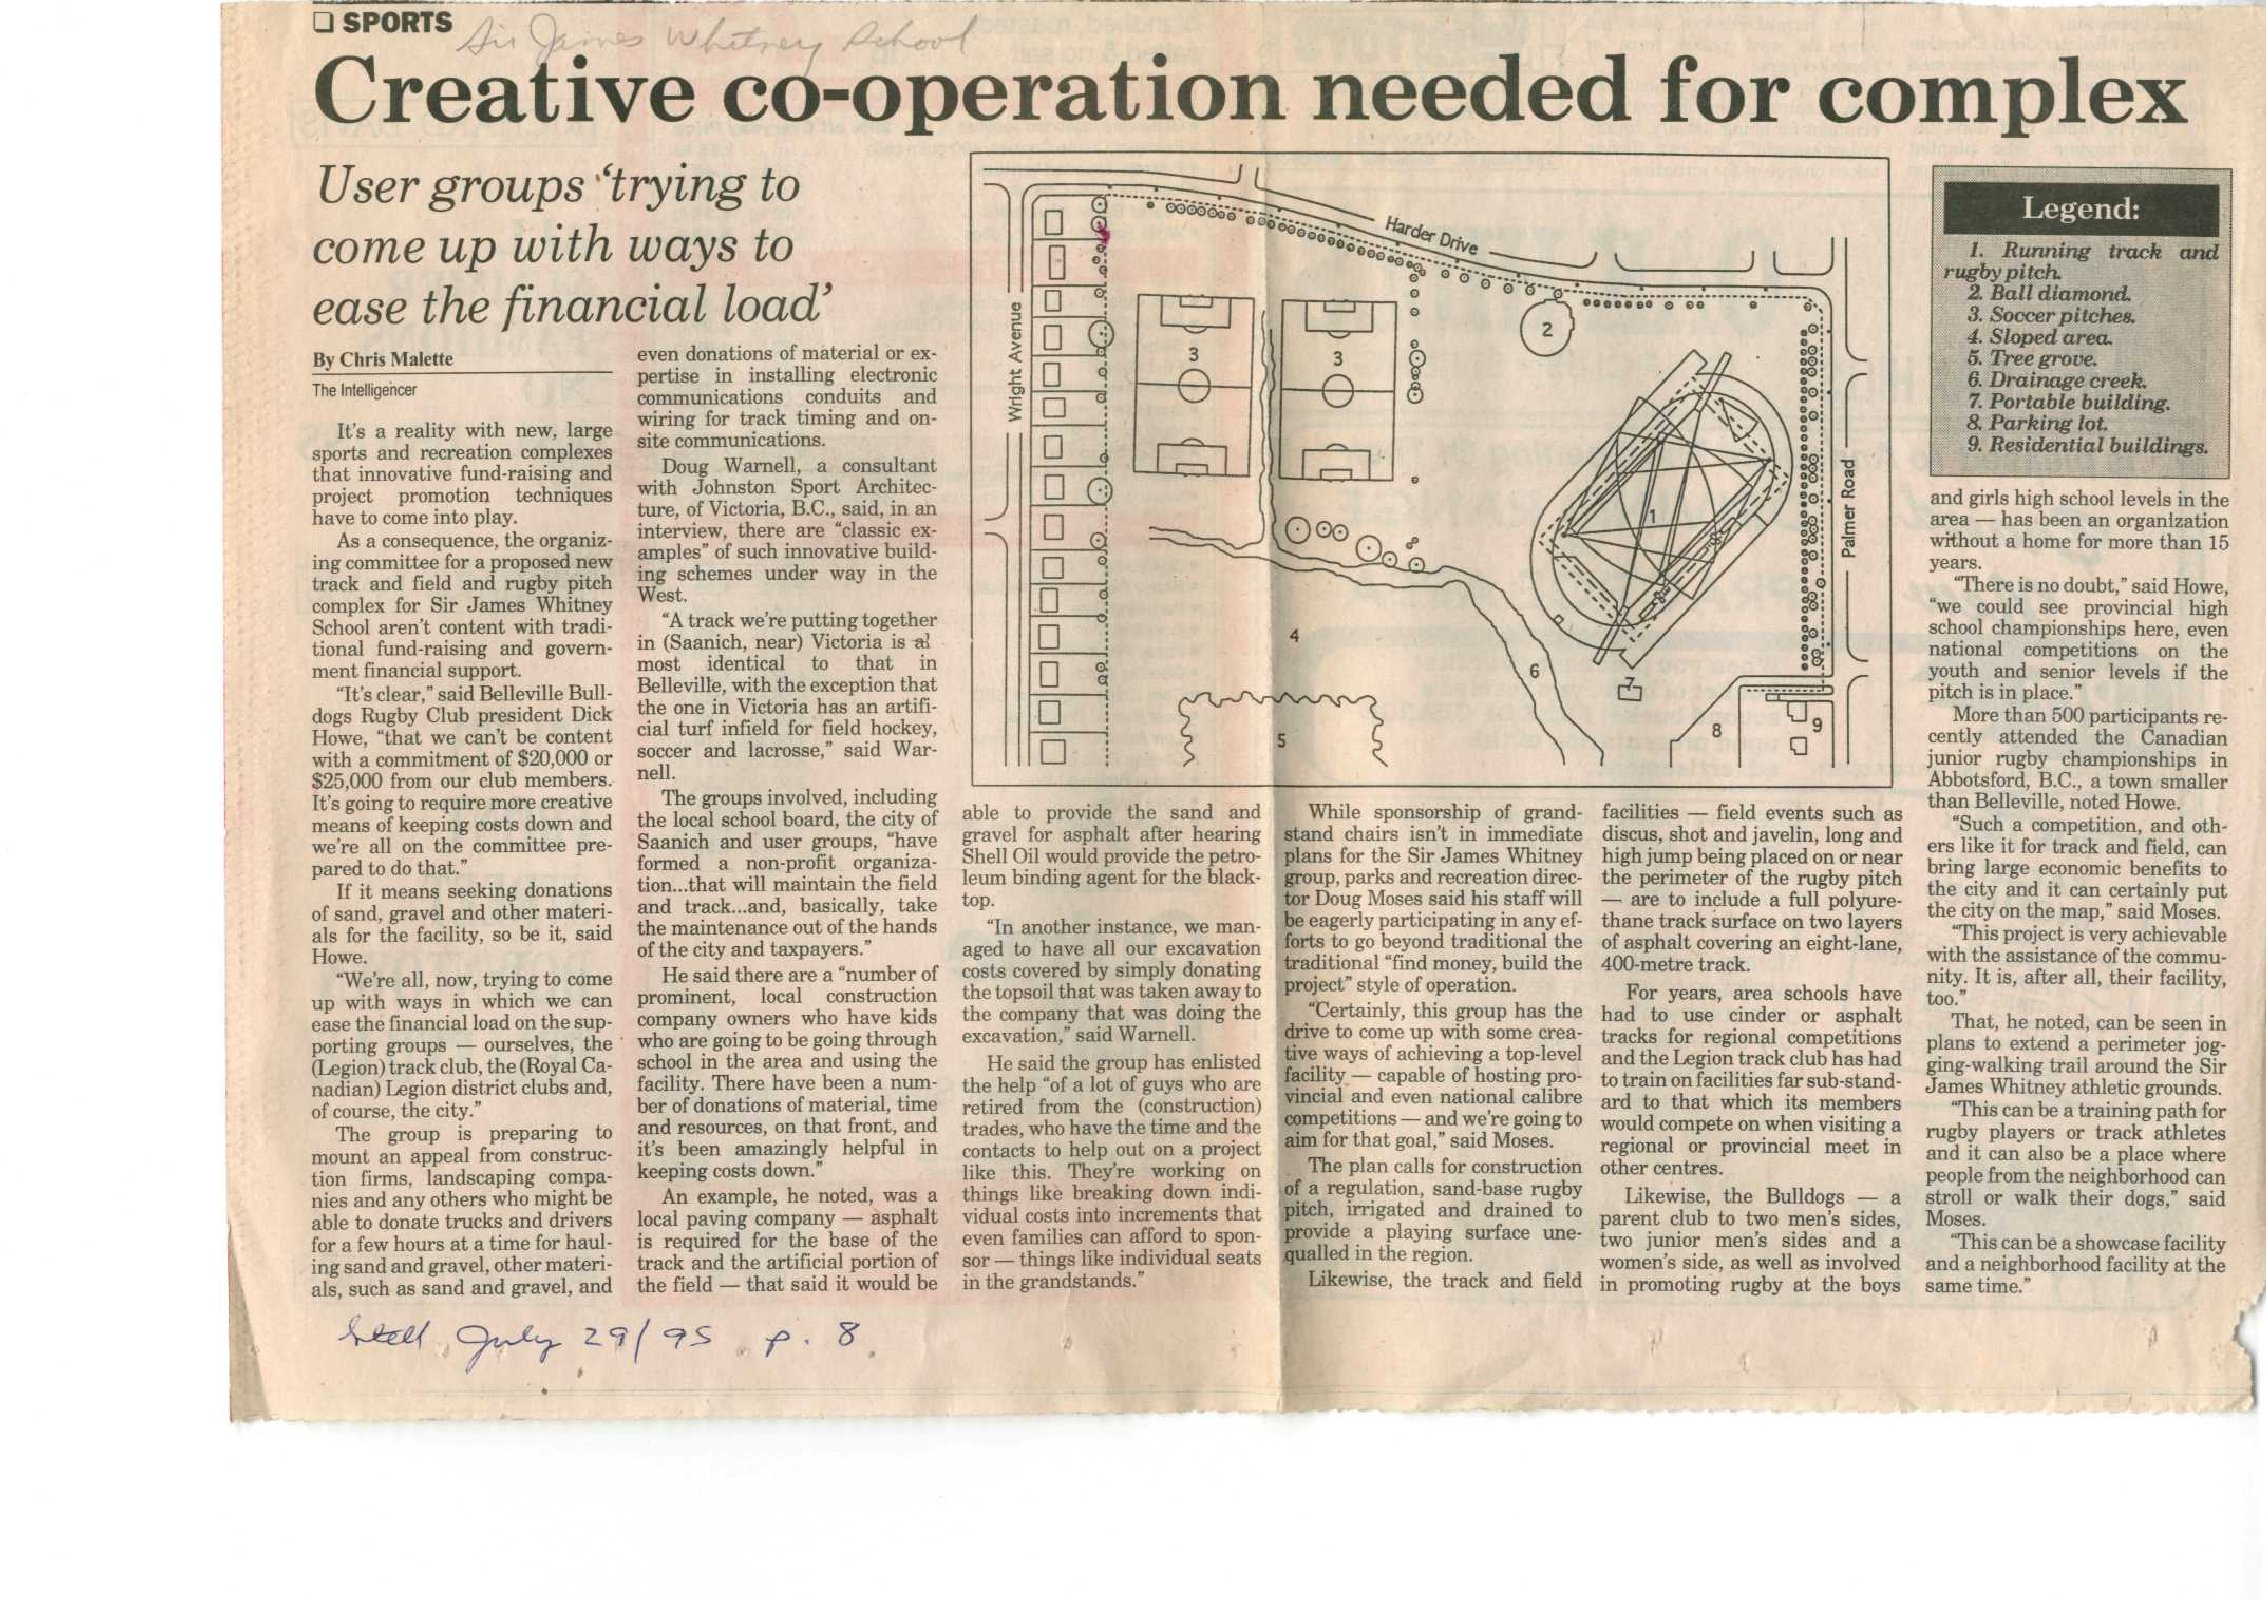 Creative co-operation needed for complex